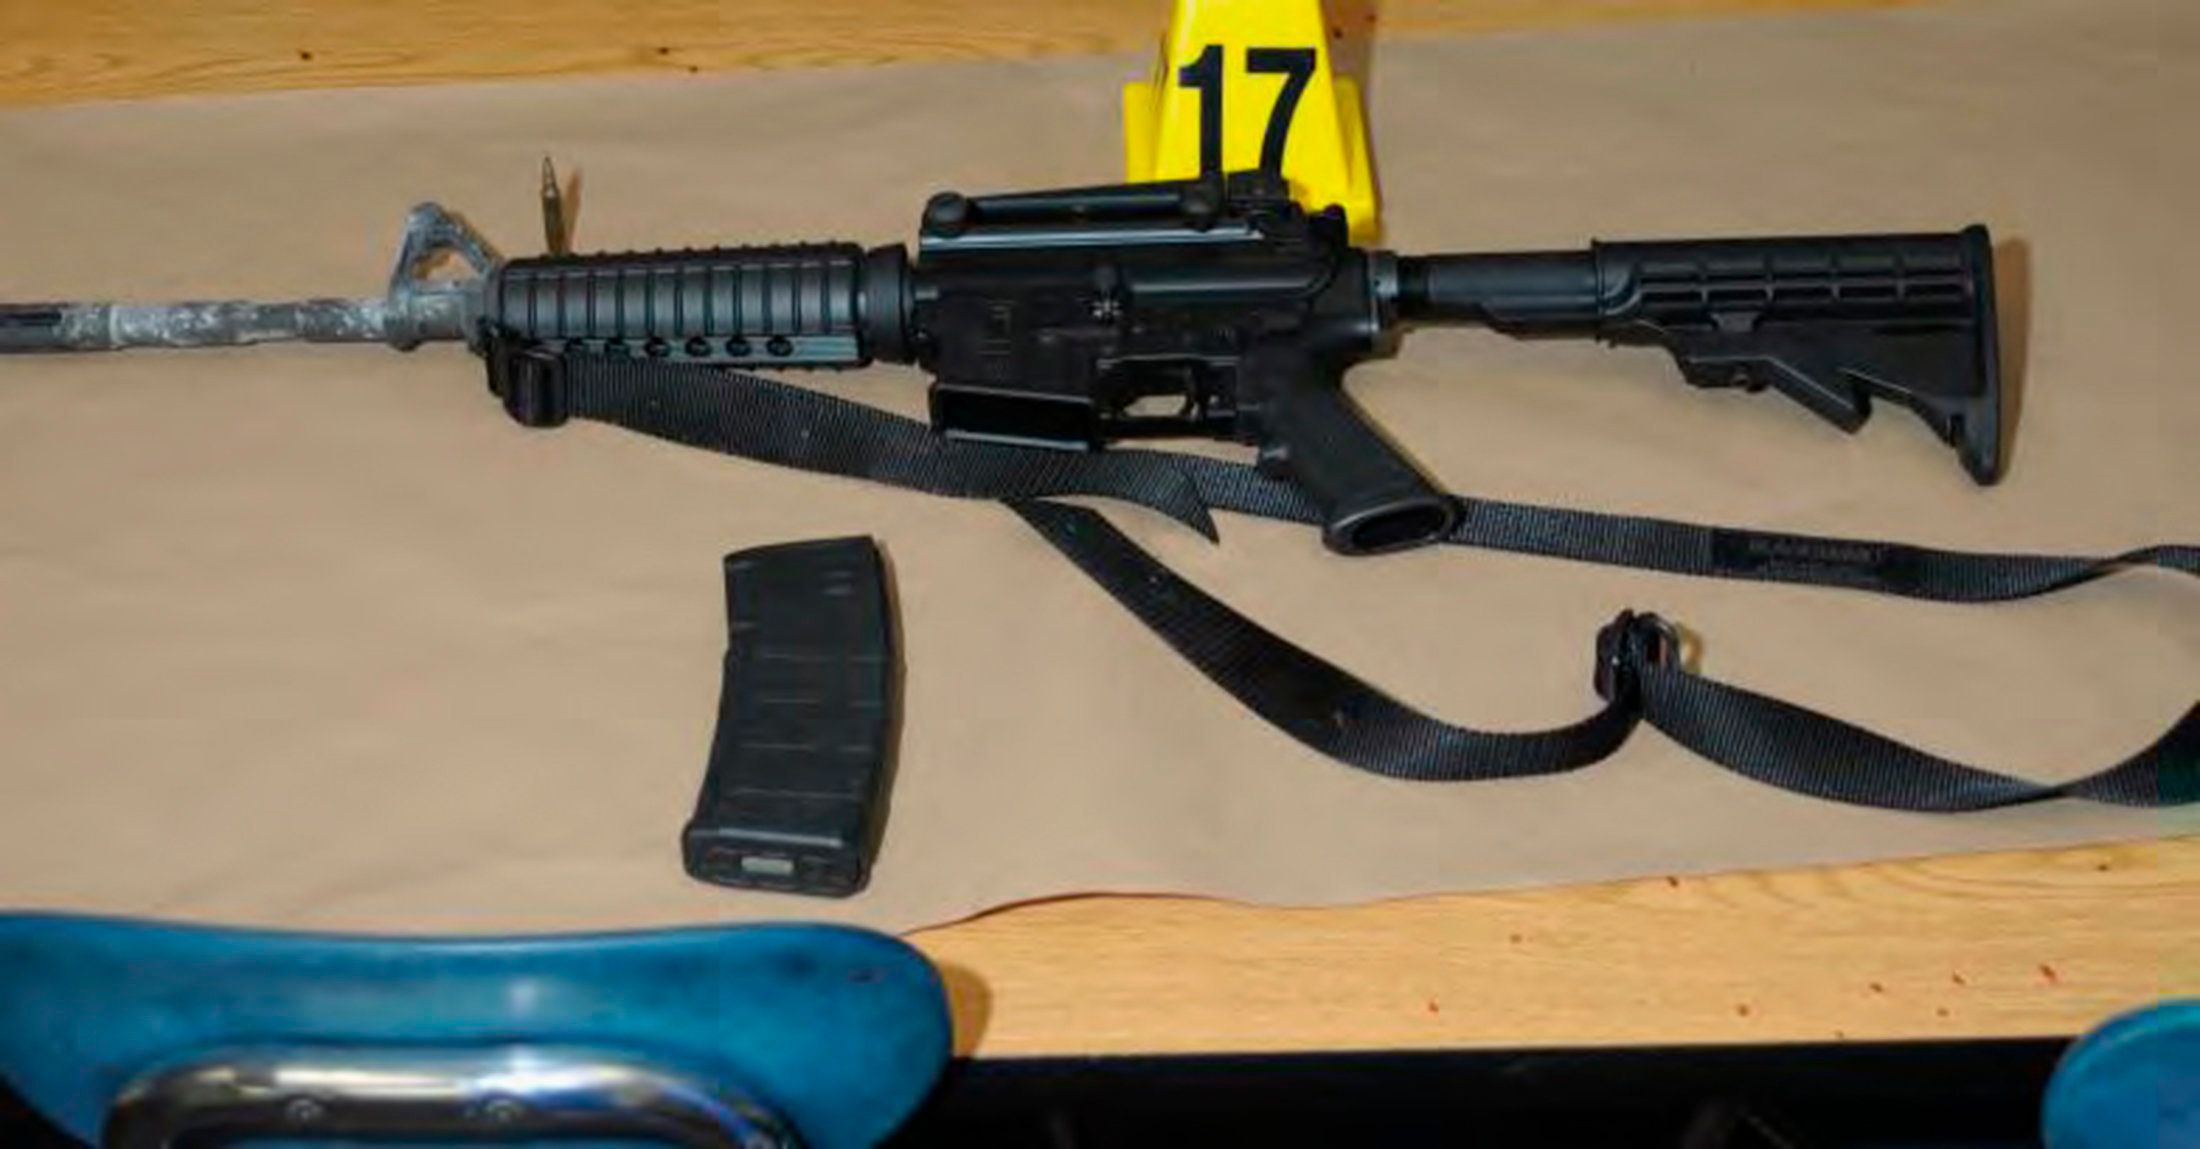 A Bushmaster rifle belonging to Sandy Hook Elementary school gunman Adam Lanza in Newtown, Connecticut is seen after its recovery at the school in this police evidence photo released by the state's attorney's office on November 25, 2013.   REUTERS/Connecticut Department of Justice/Handout via REUTERS   ATTENTION EDITORS - THIS IMAGE WAS PROVIDED BY A THIRD PARTY. EDITORIAL USE ONLY